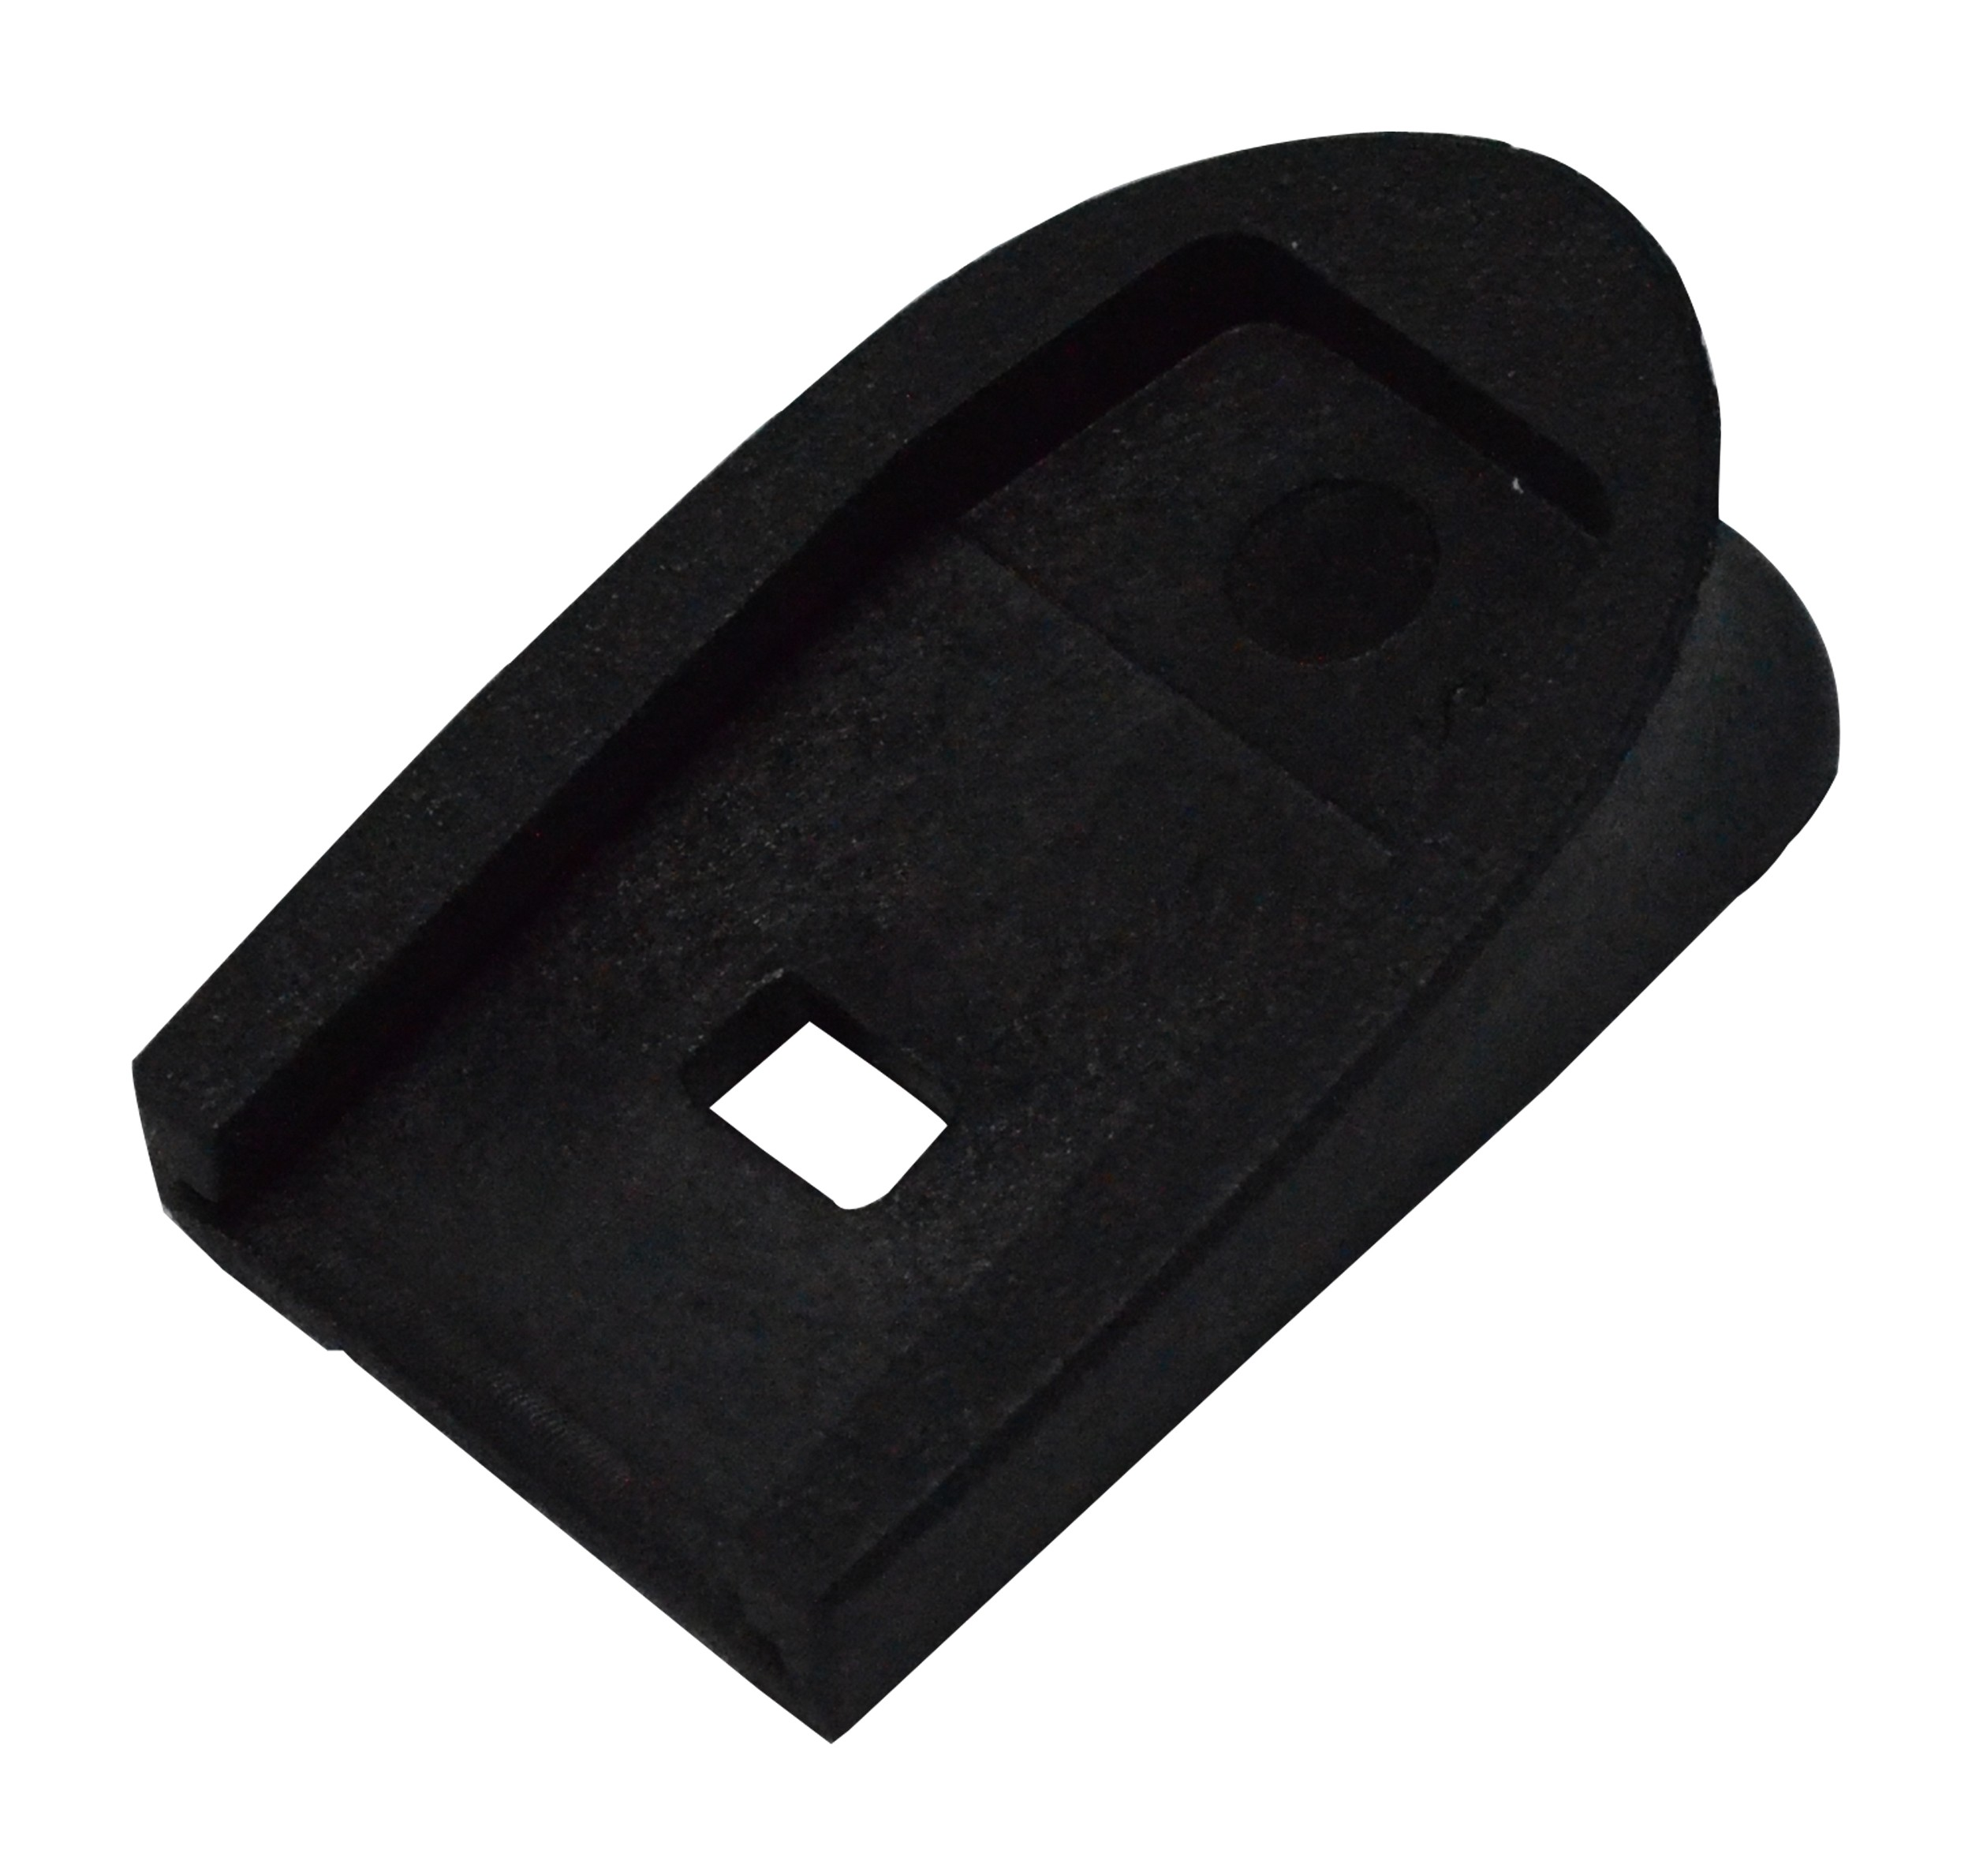 Grip Extension - Fits Smith & Wesson MP Sheild 9MM .40